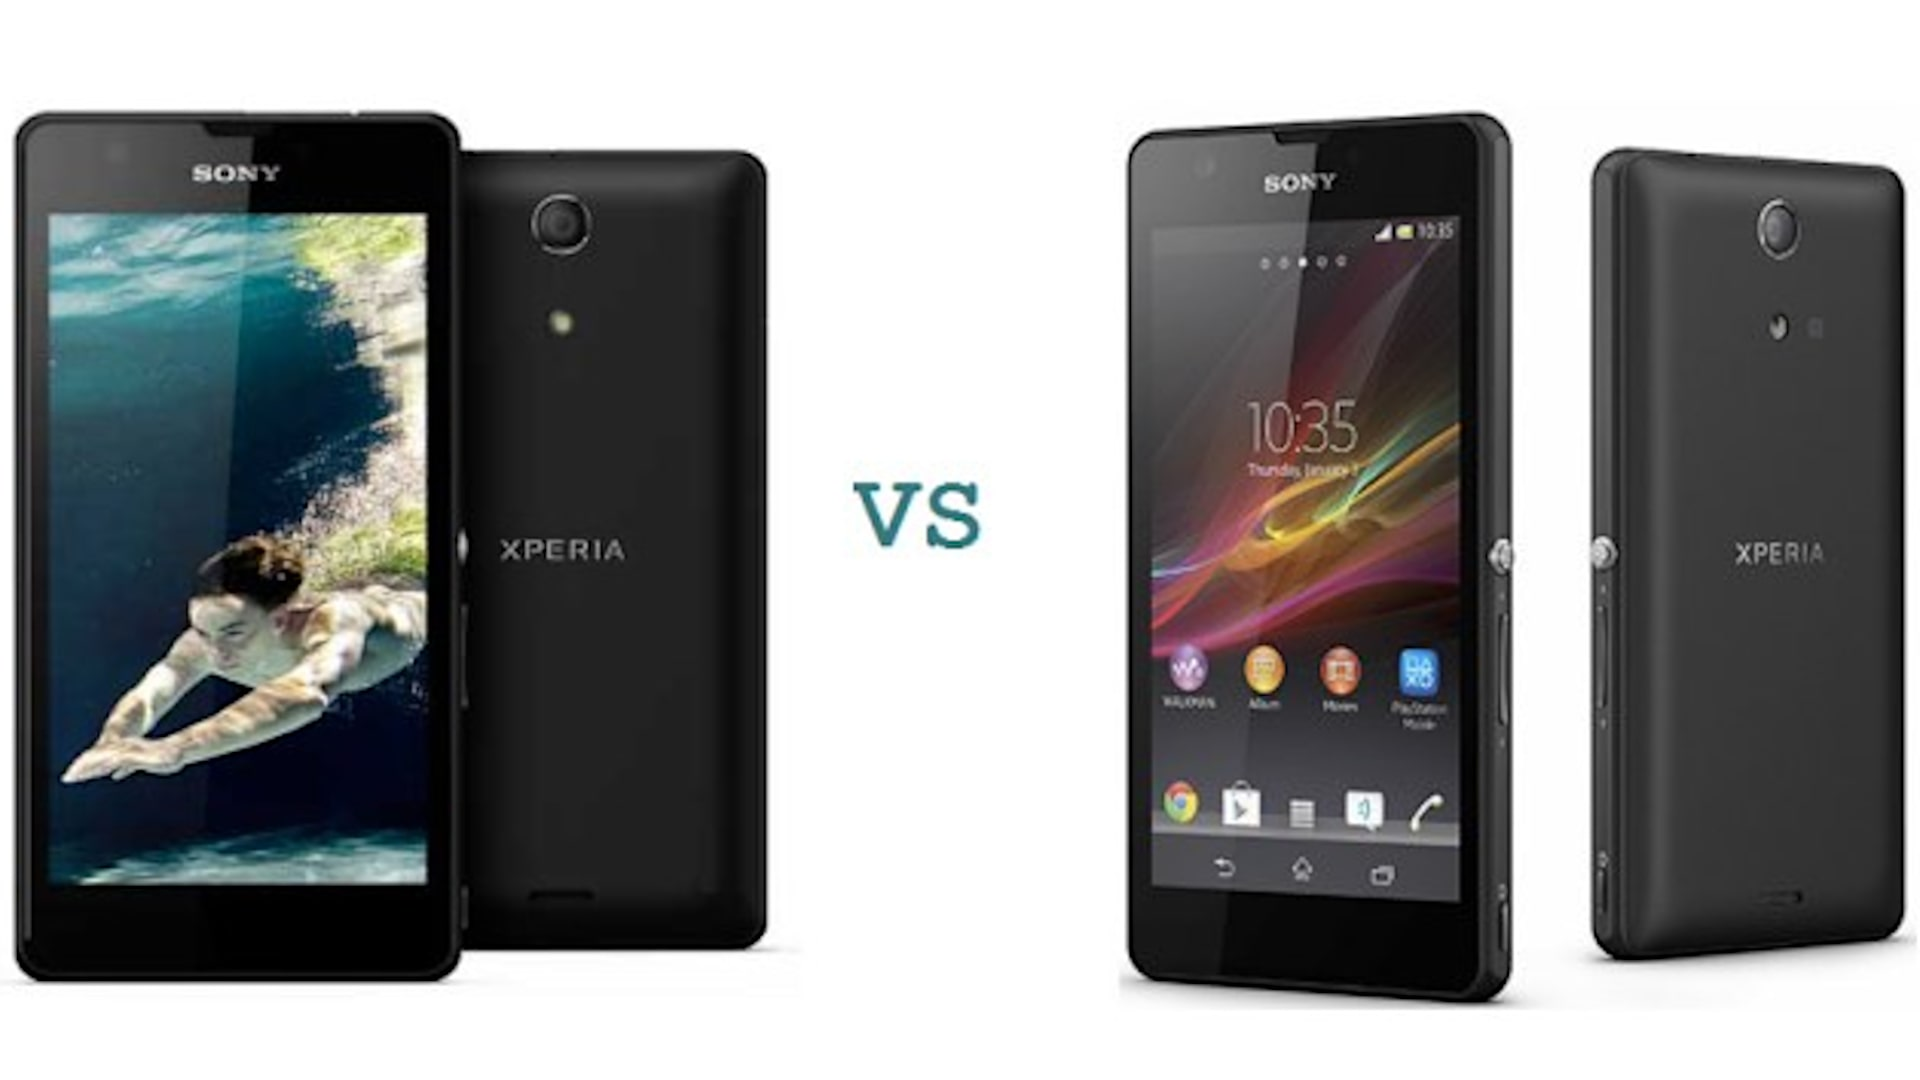 Xperia Z vs Xperia ZR Comparison